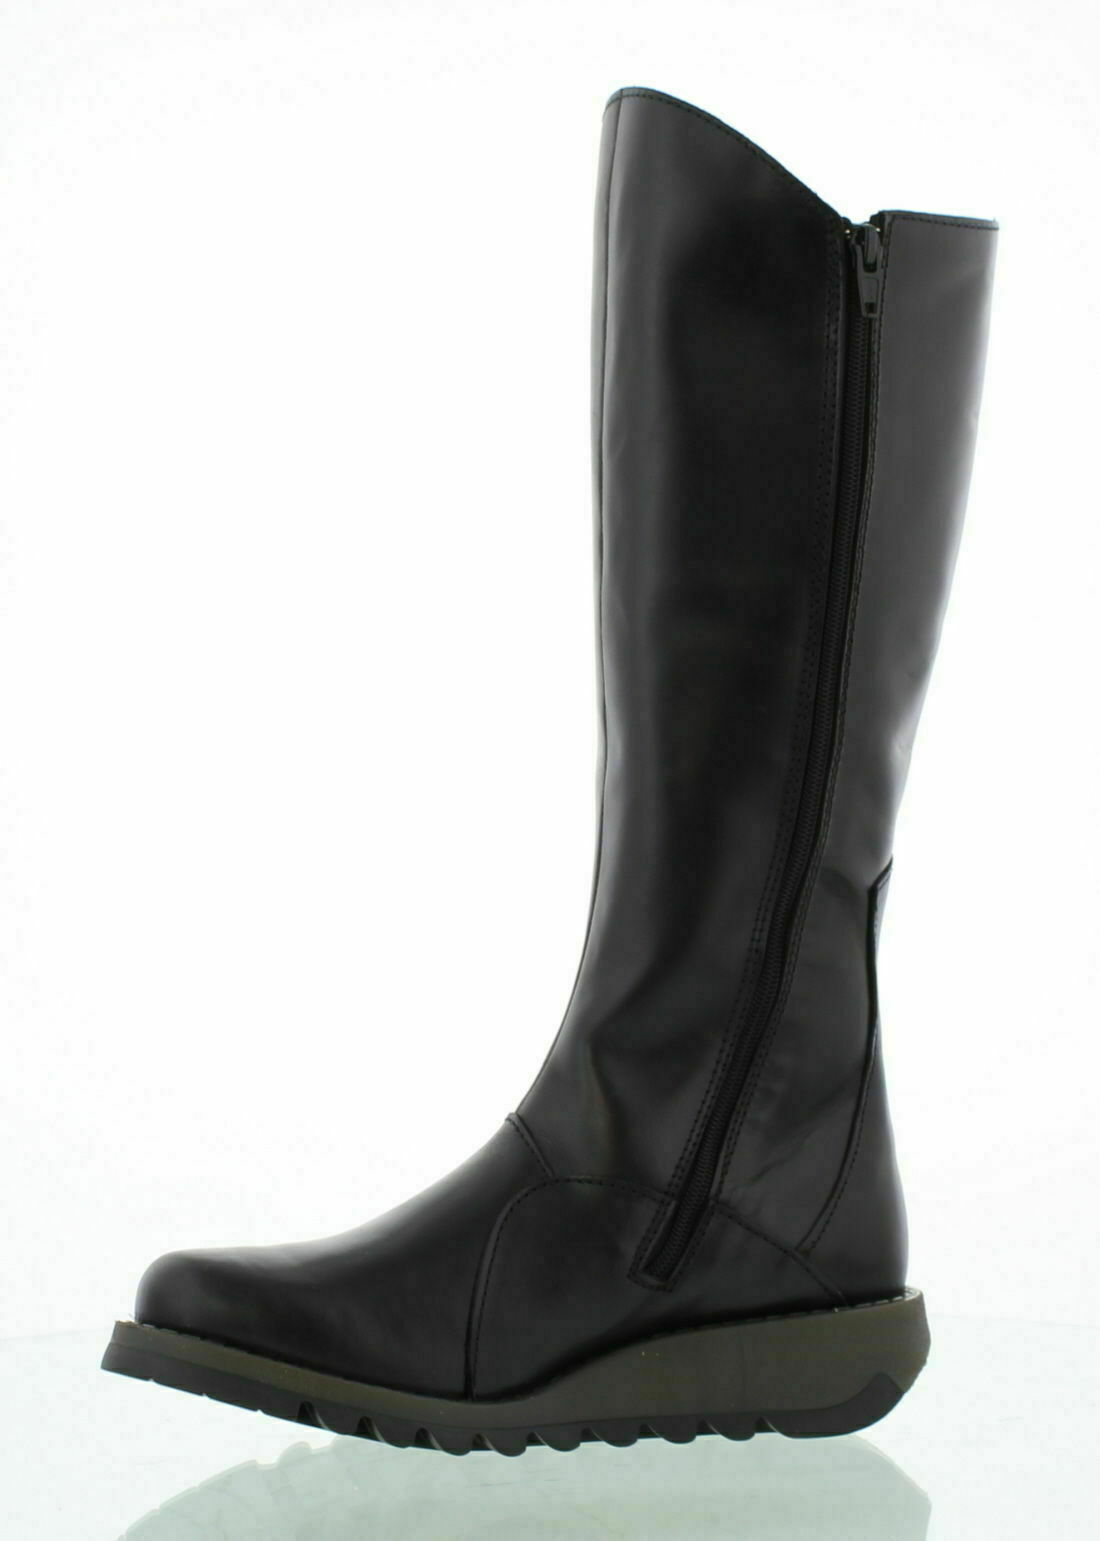 Fly London Ladies Boots Mol 2 Black  Leather Zip Up Knee High Made In Portugal